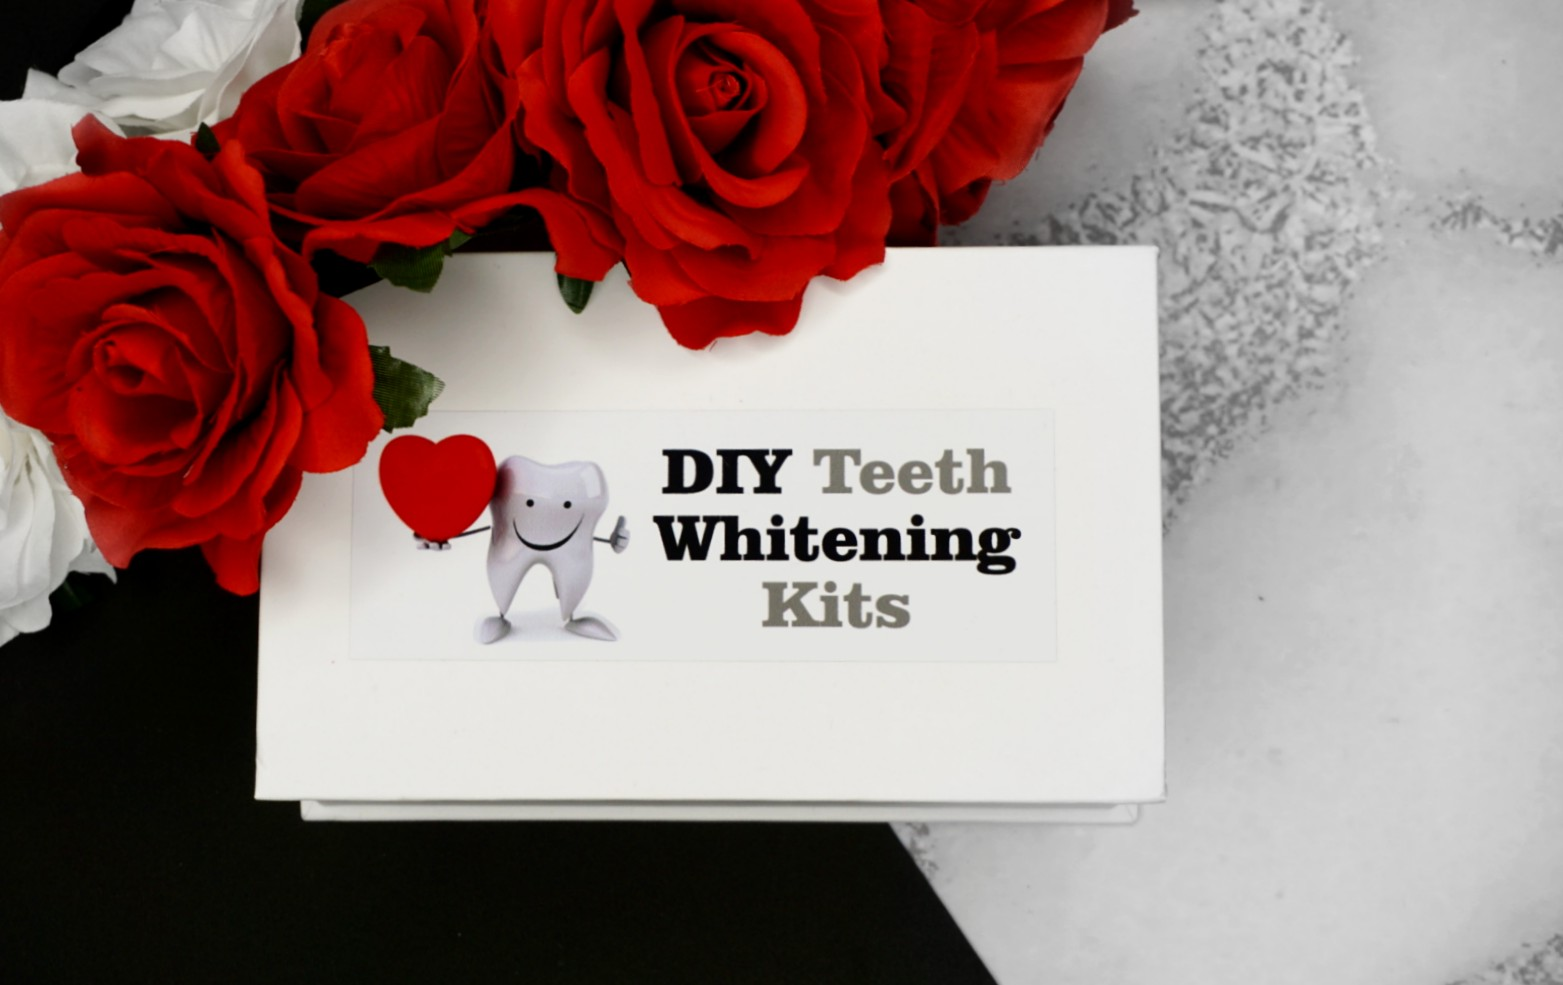 HOW TO GET WHITER TEETH AT HOME WITH THE DIY TEETH WHITENING KITS